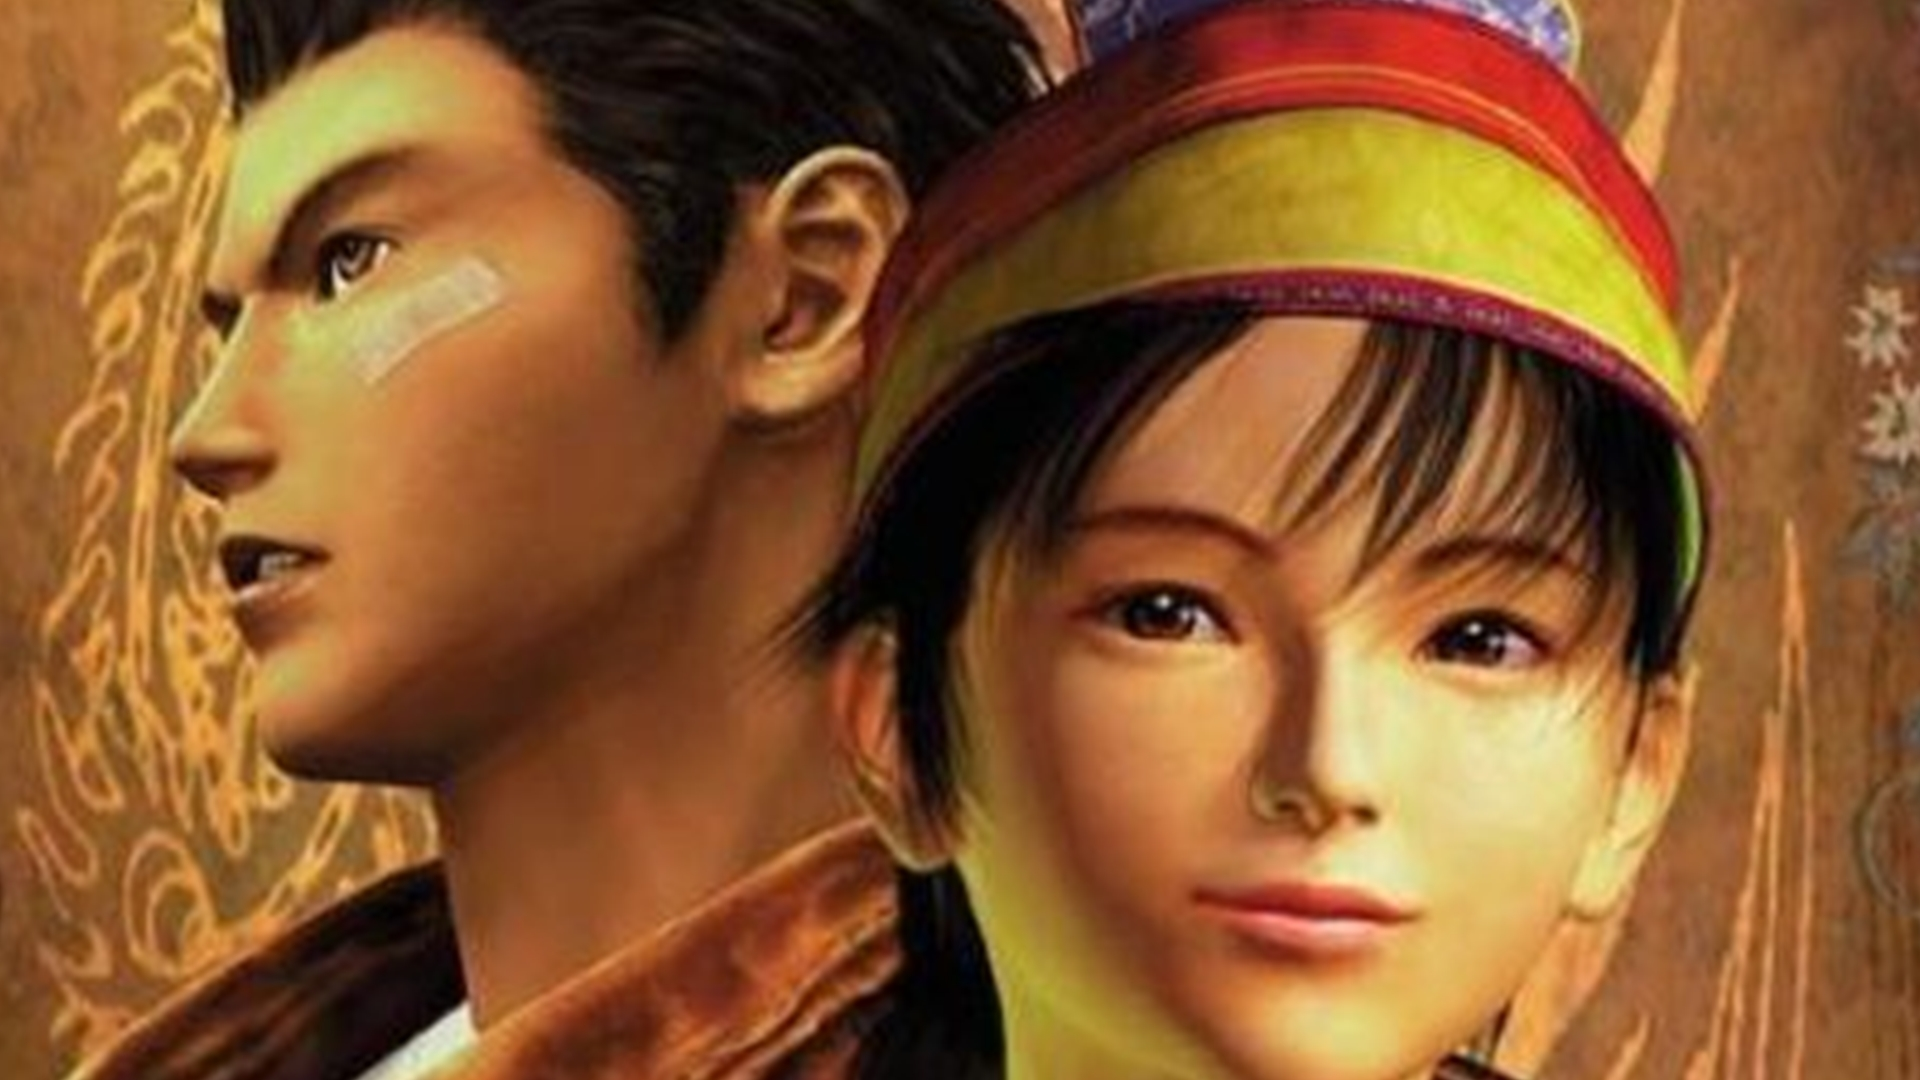 'Shenmue 3' set to be released in the second half of 2018